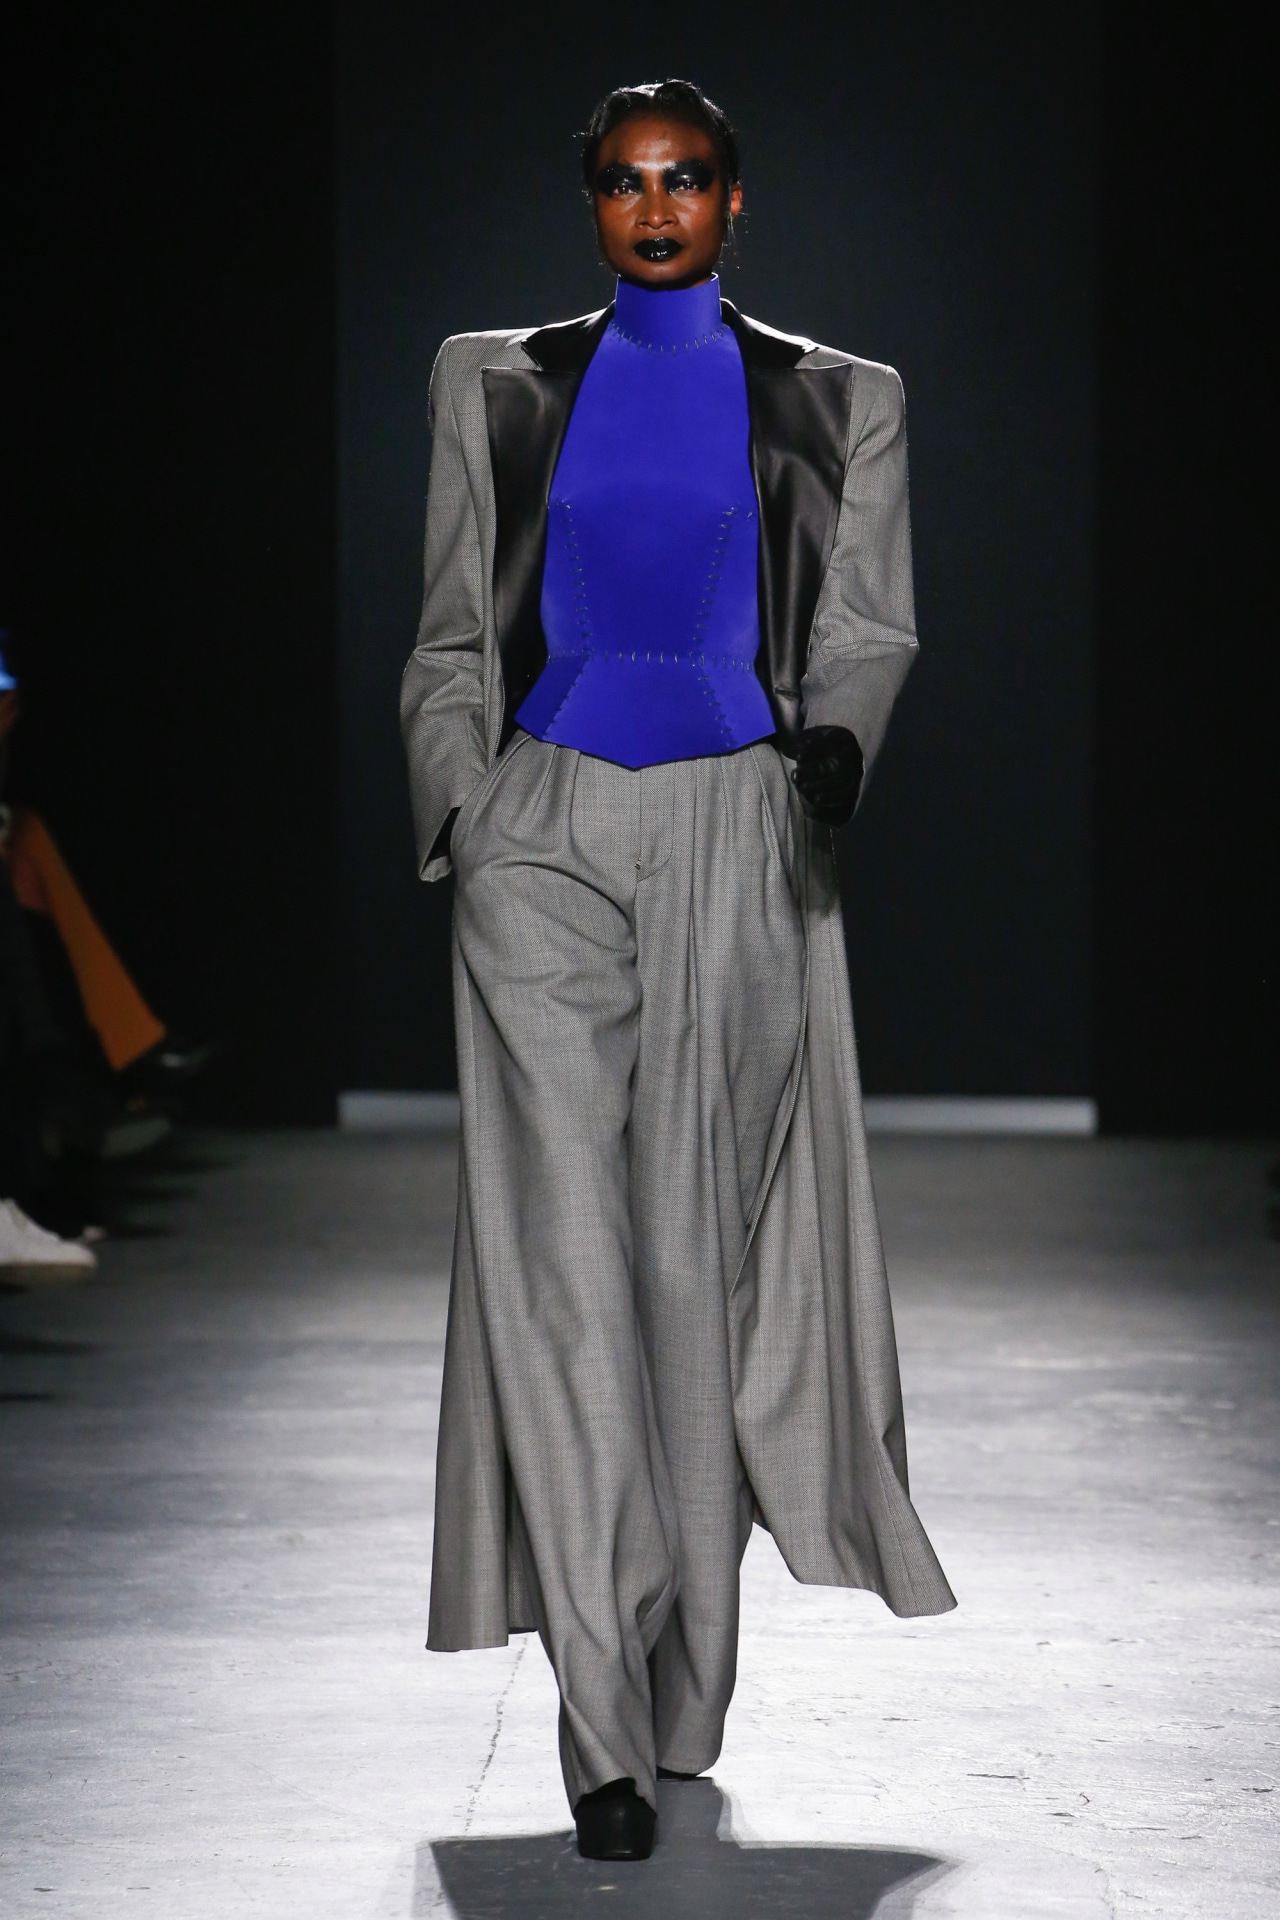 A look from Gareth Pugh ready-to-wear autumn/winter '18/'19 collection. Image credit: Indigital